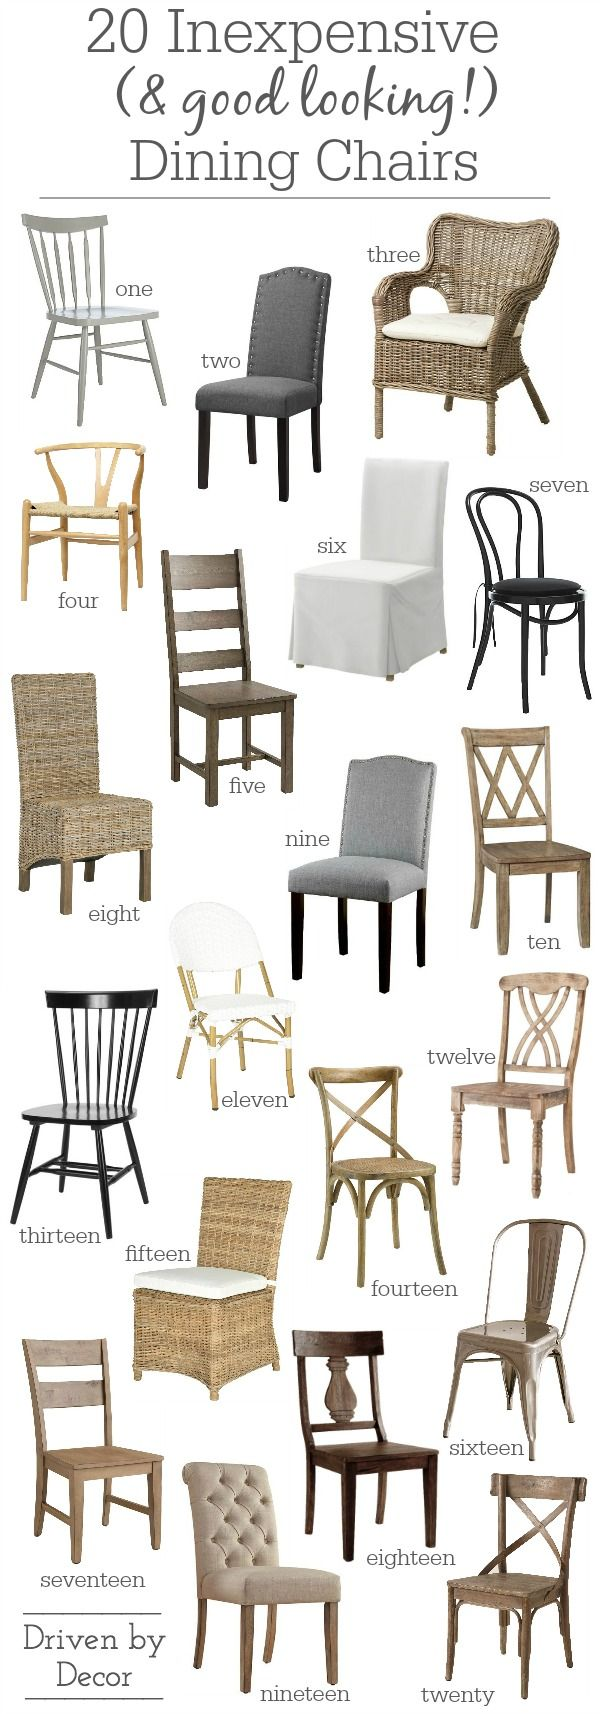 20 Inexpensive Dining Chairs (That Donu0027t Look Cheap